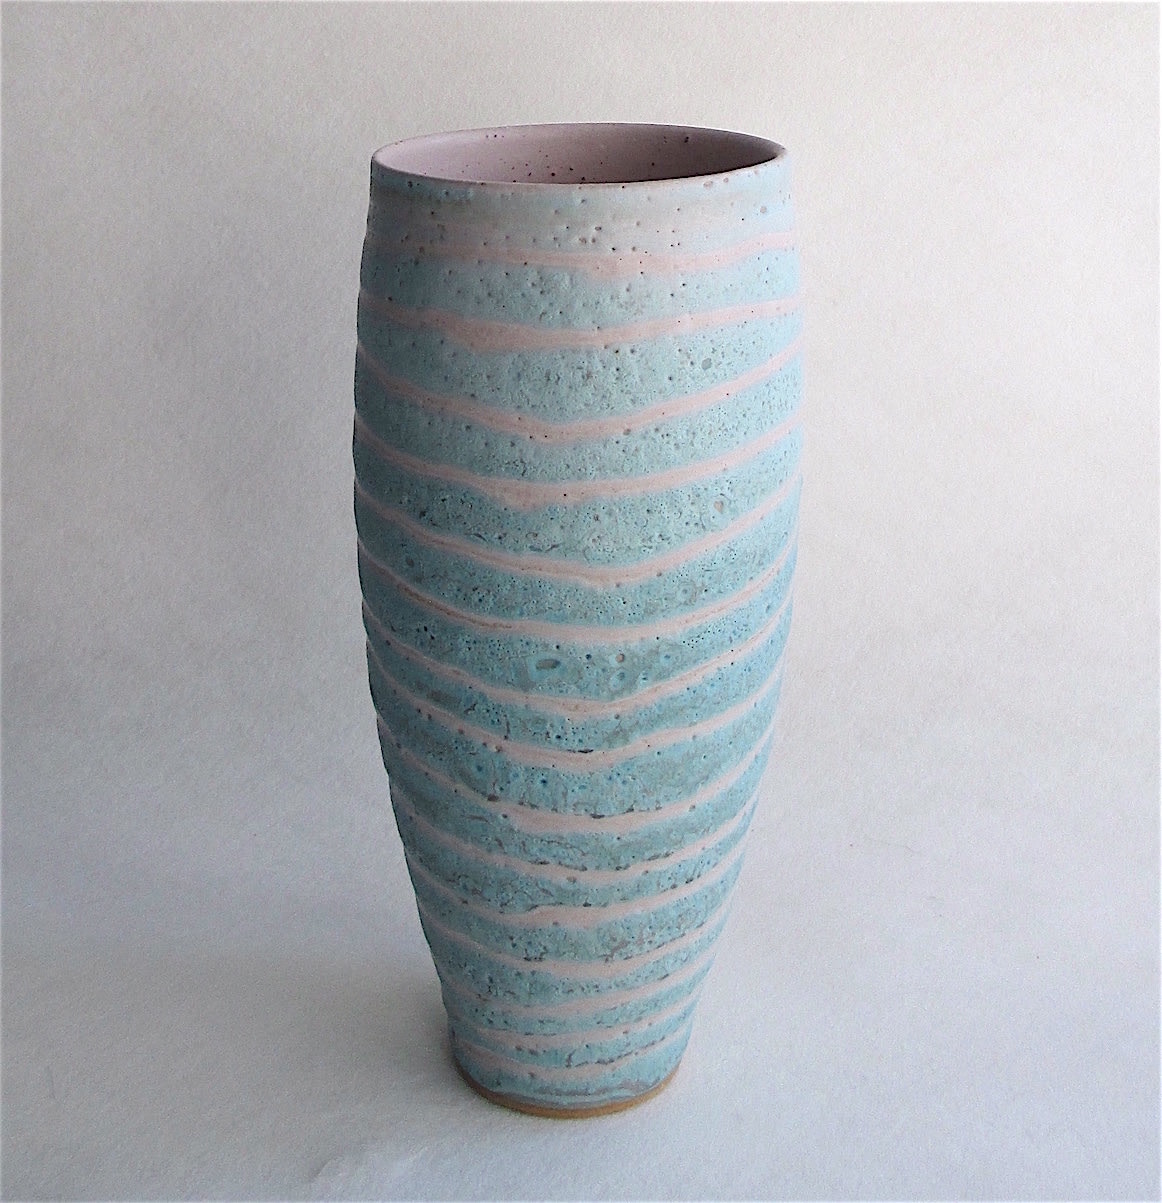 <span class=&#34;link fancybox-details-link&#34;><a href=&#34;/artists/44-sarah-perry/works/5967-sarah-perry-pink-fossil-vessel-2018/&#34;>View Detail Page</a></span><div class=&#34;artist&#34;><strong>Sarah Perry</strong></div> <div class=&#34;title&#34;><em>Pink Fossil Vessel</em>, 2018</div> <div class=&#34;signed_and_dated&#34;>stamped by the artist's mark</div> <div class=&#34;medium&#34;>stoneware</div> <div class=&#34;dimensions&#34;>h 22</div><div class=&#34;price&#34;>£145.00</div><div class=&#34;copyright_line&#34;>Copyright The Artist</div>